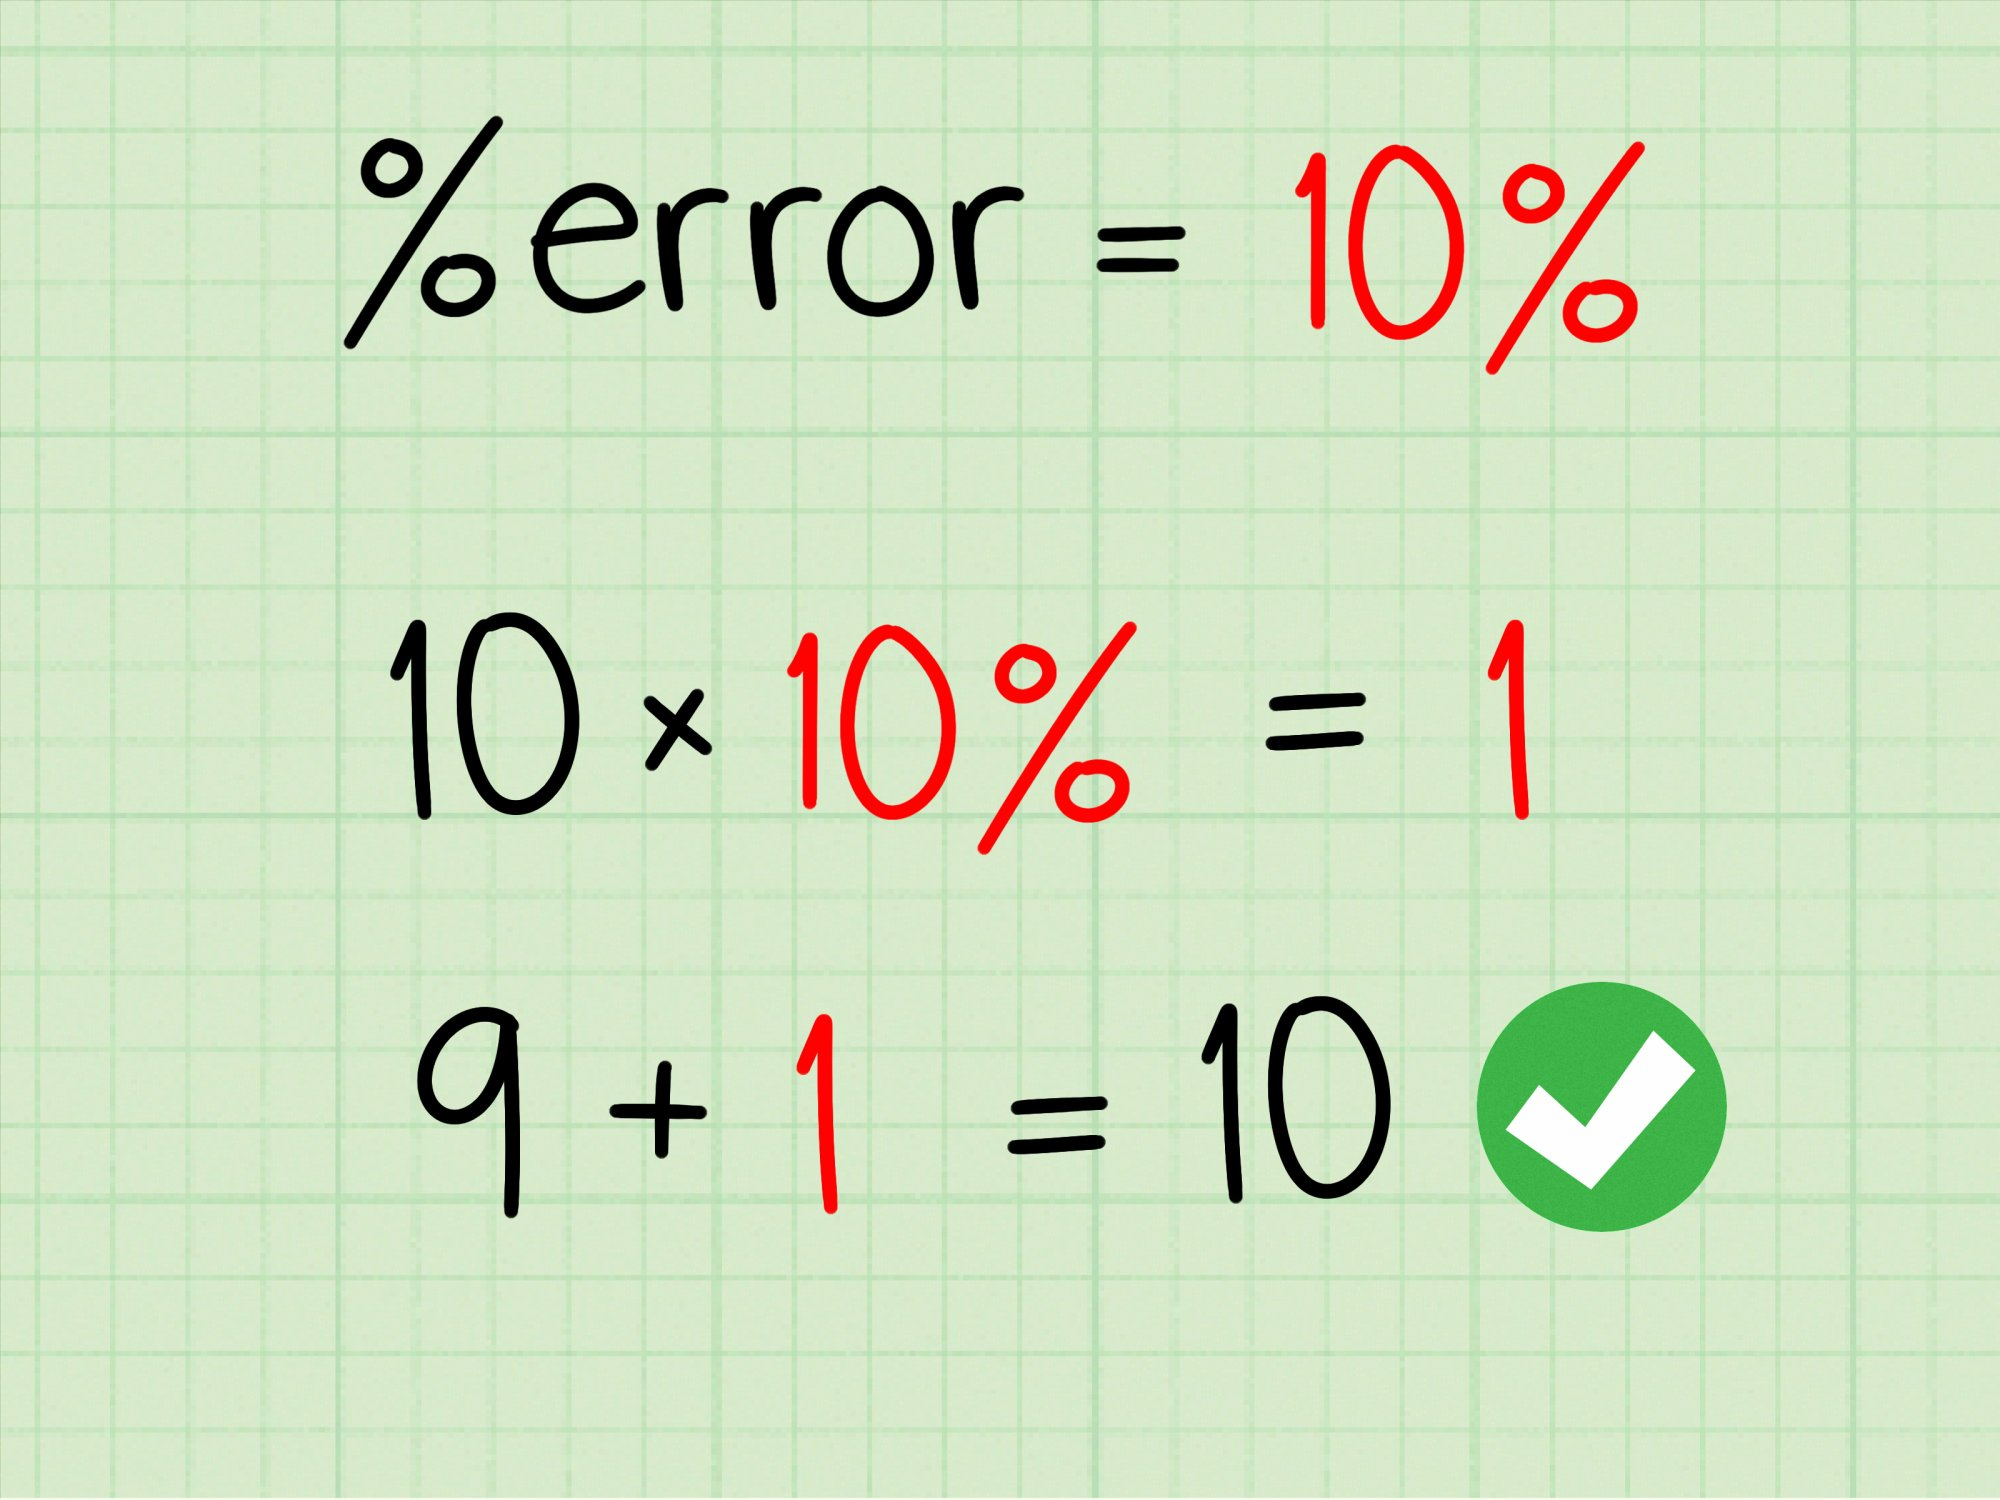 hight resolution of How to Calculate Percentage Error: 7 Steps (with Pictures)